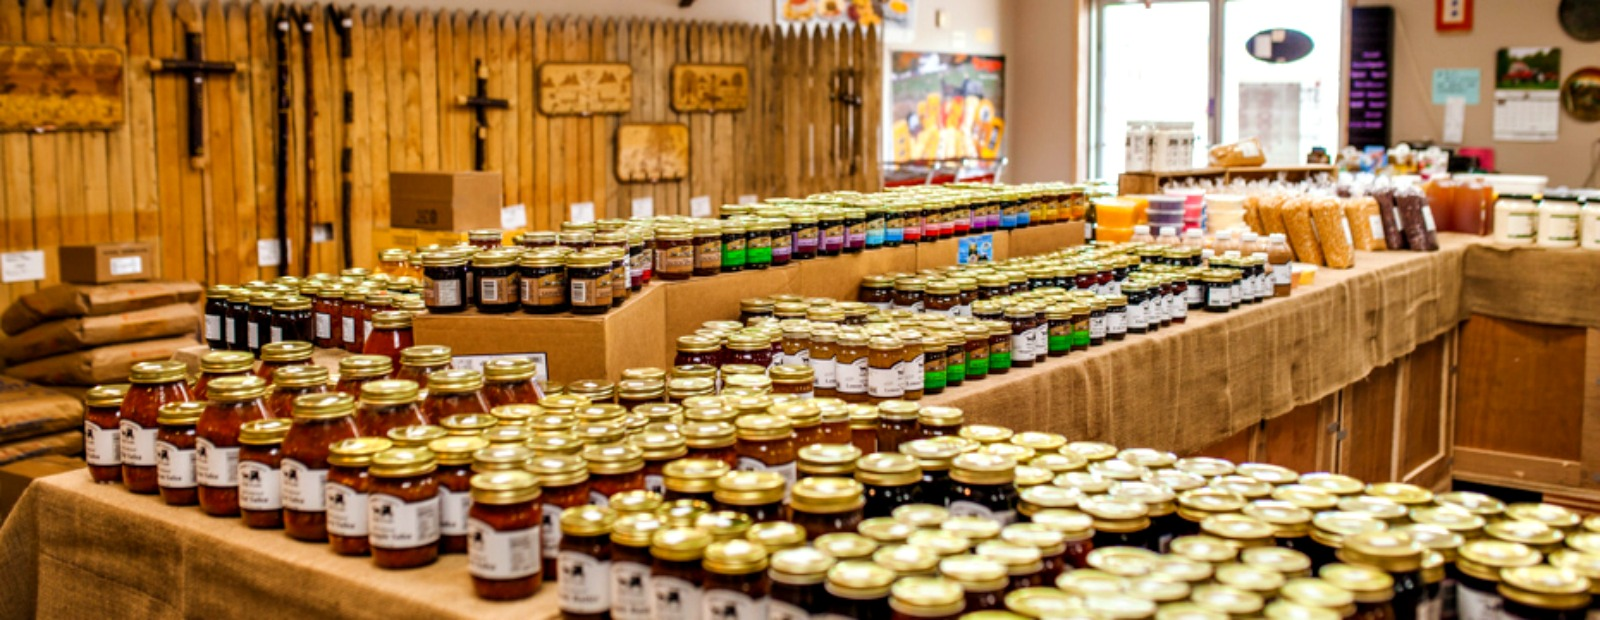 Looking for a new jam? Pick something unique at the Amish Country Market